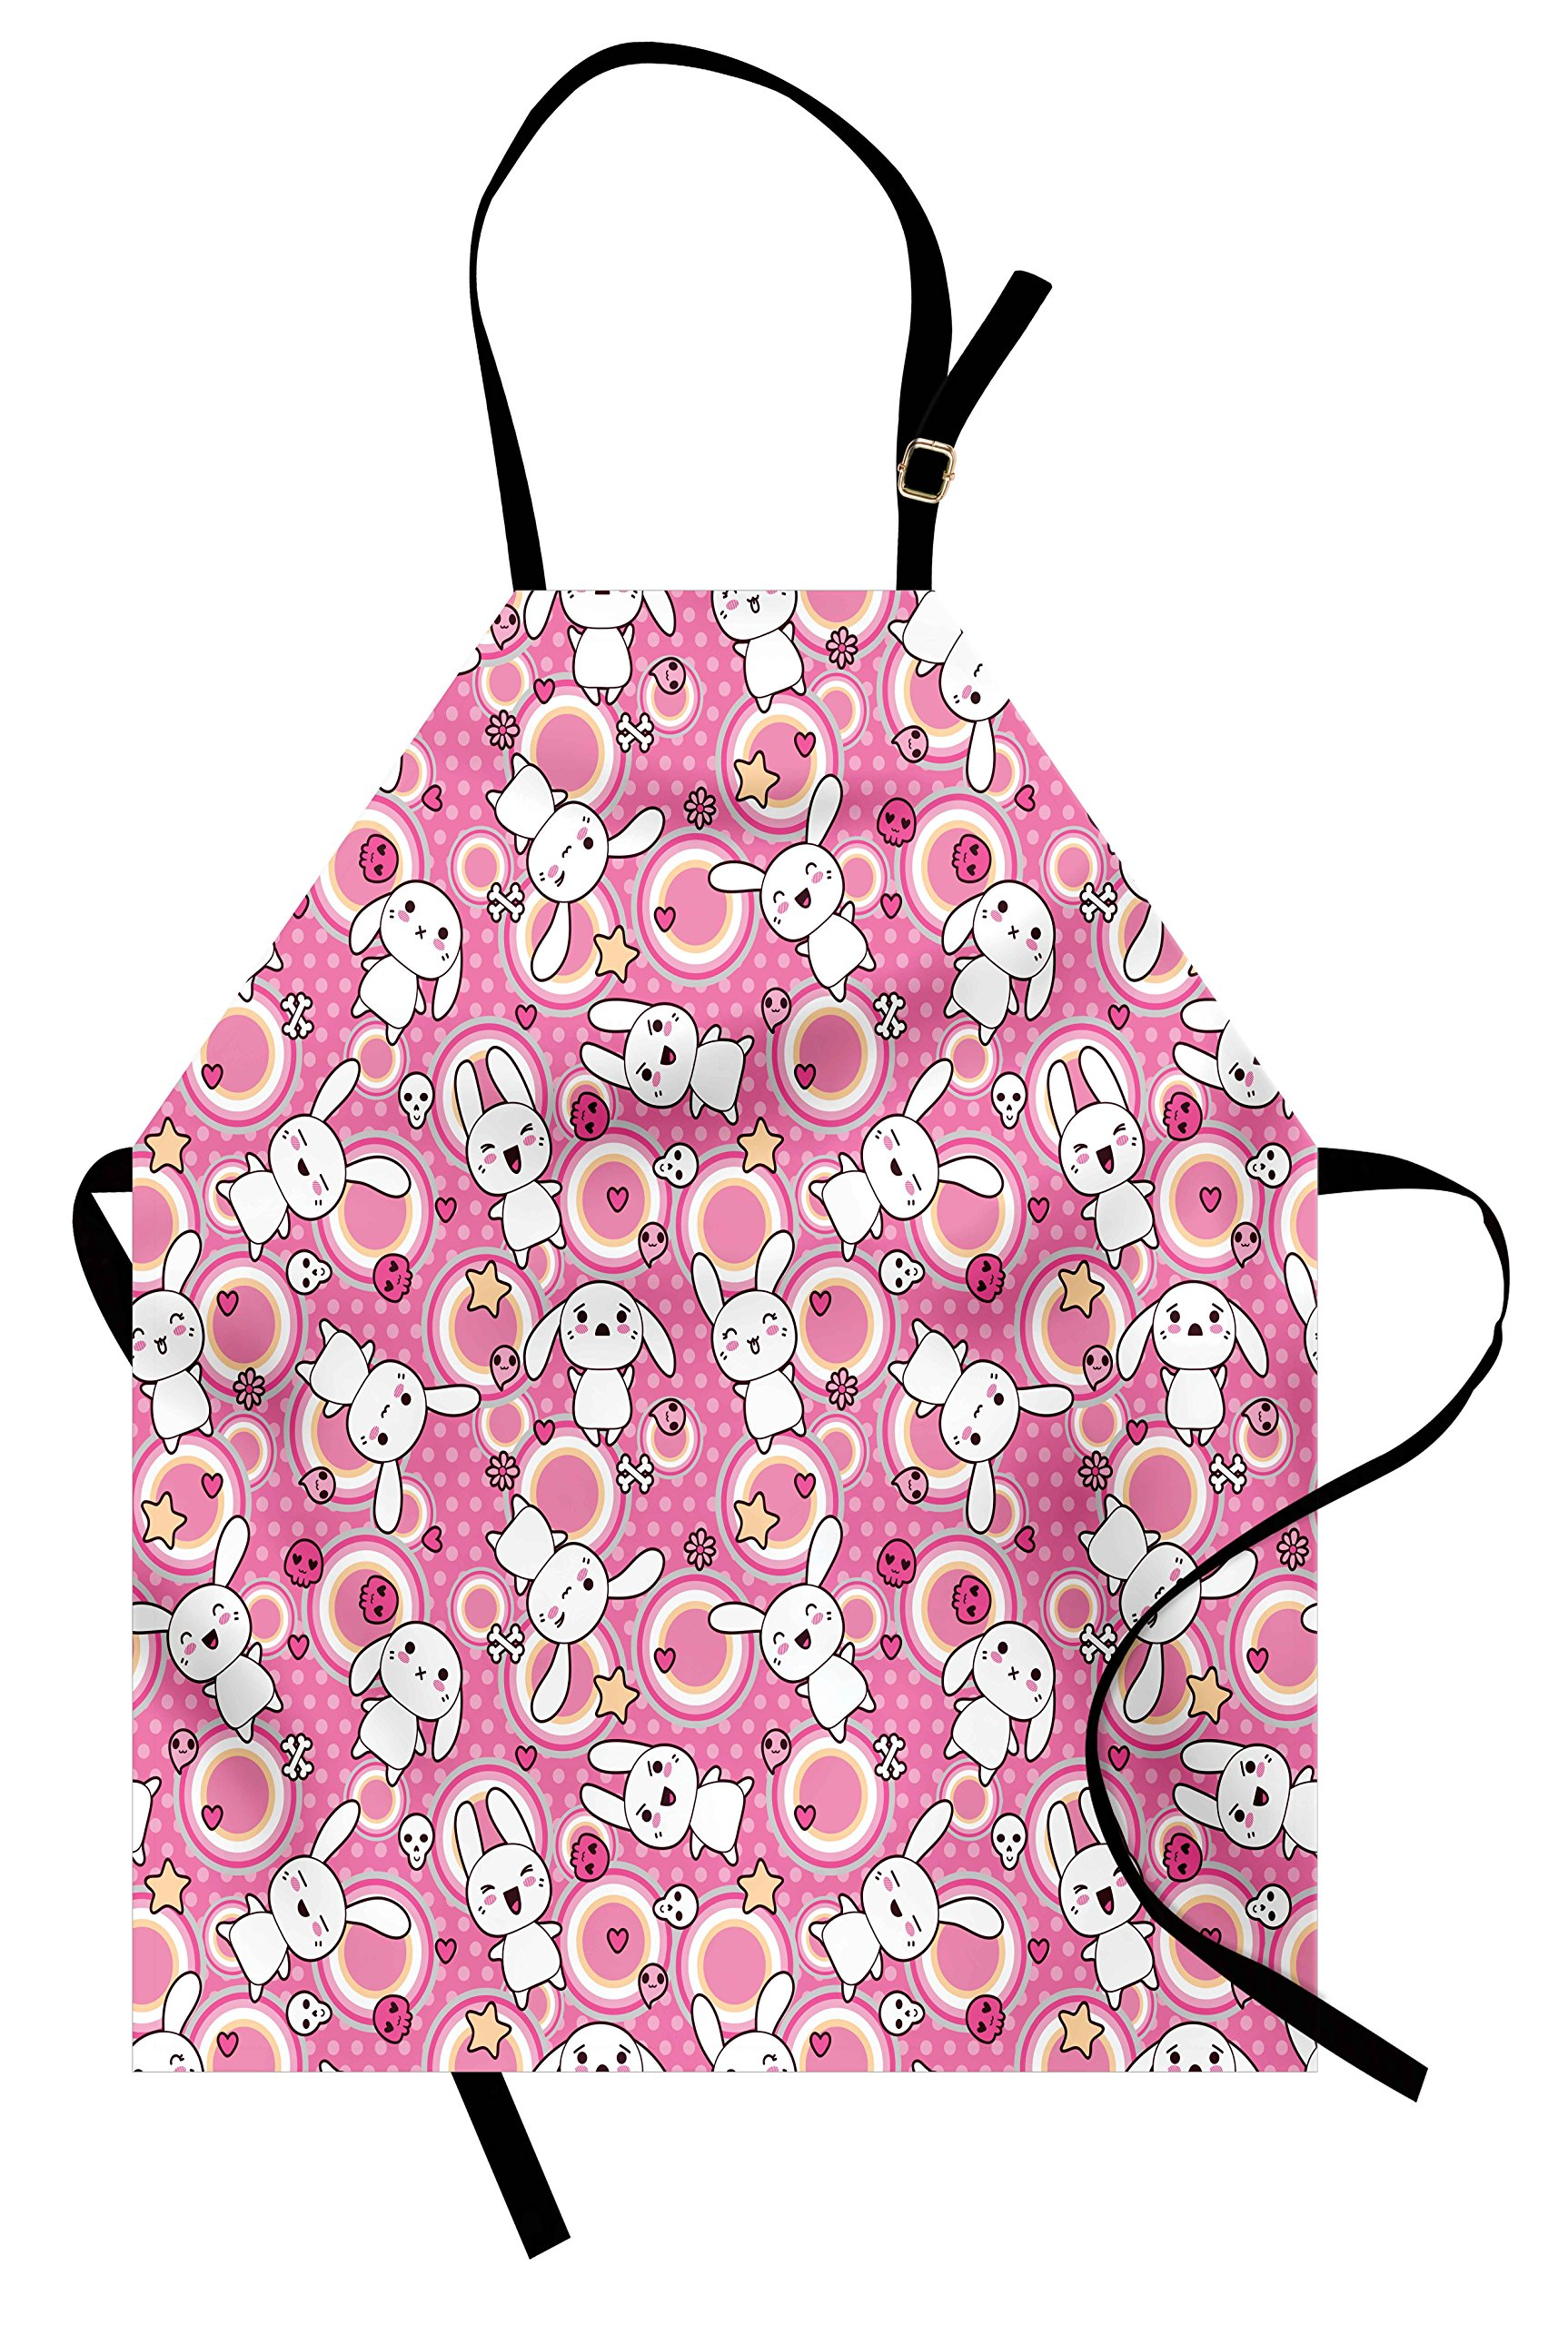 Ambesonne Anime Apron, Funny Kawaii Illustration with Rabbits Funky Cute Animals Bunnies Kids Humor Print, Unisex Kitchen Bib Apron with Adjustable Neck for Cooking Baking Gardening, White Pink